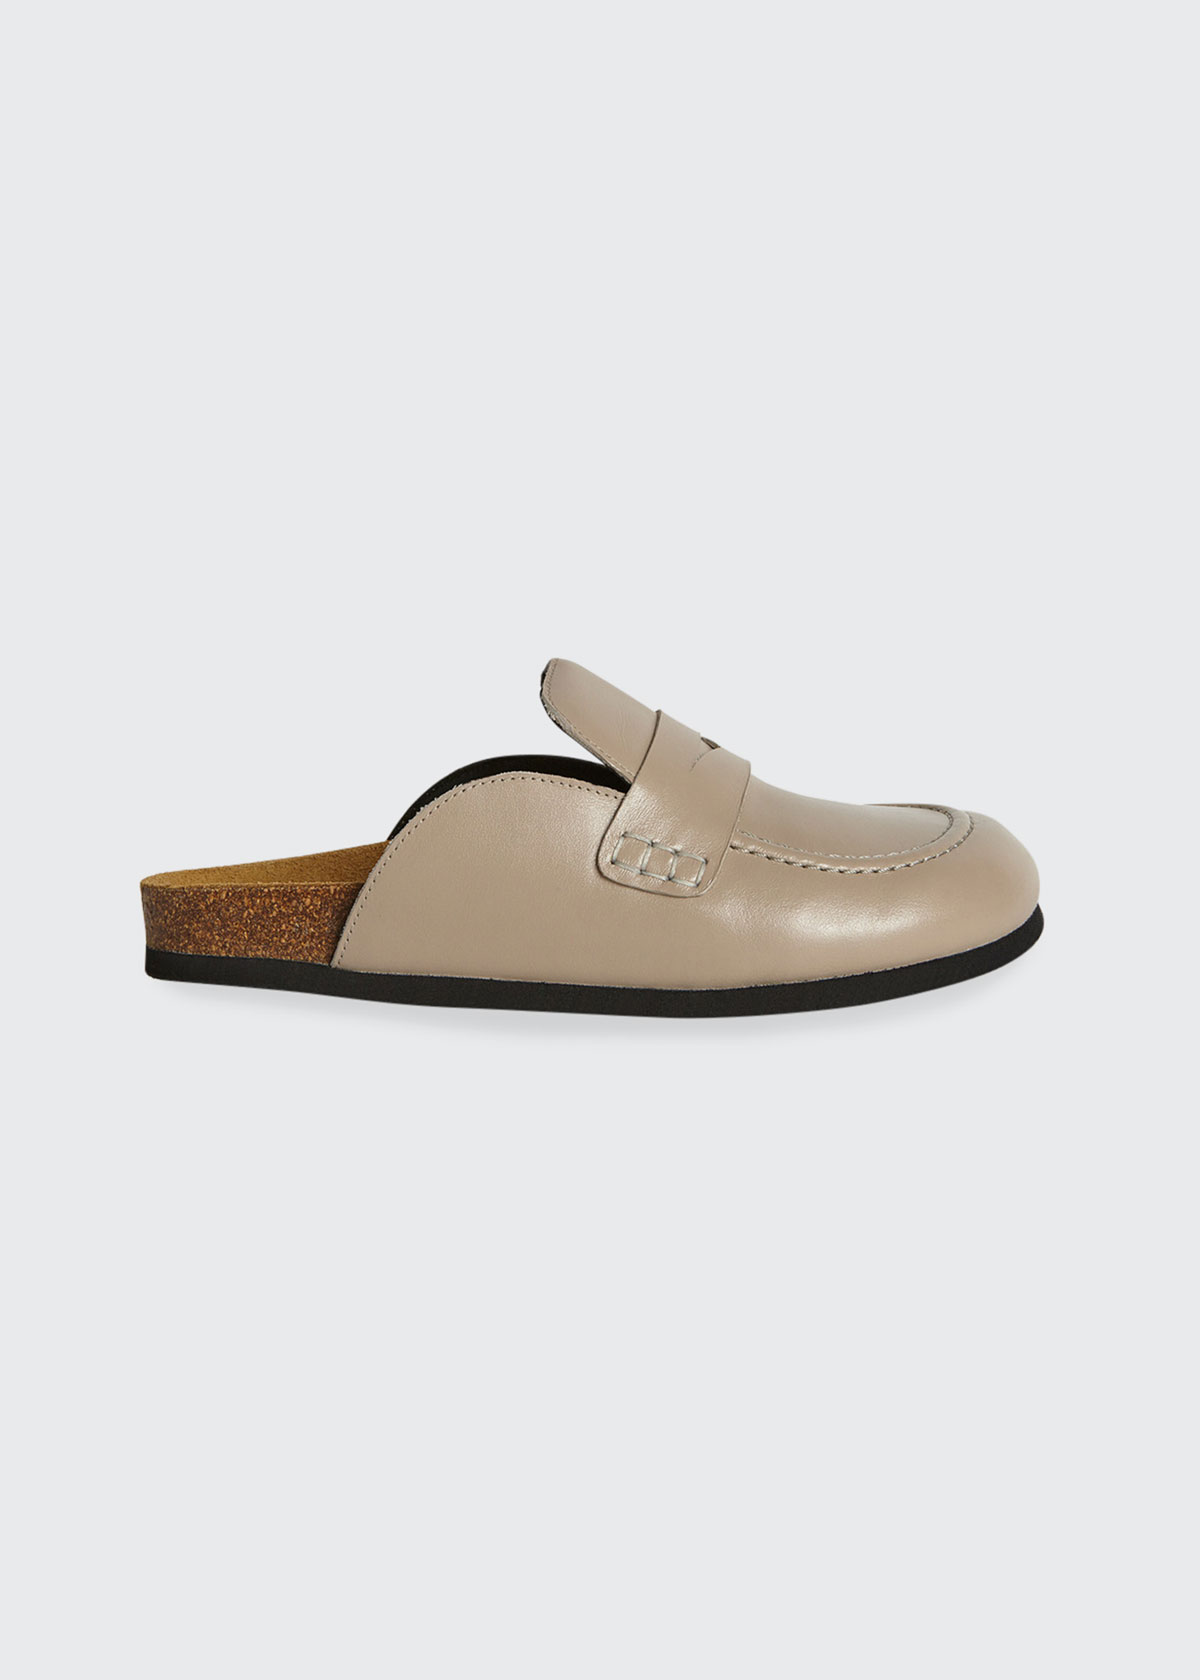 Jw Anderson LEATHER PENNY LOAFER MULES